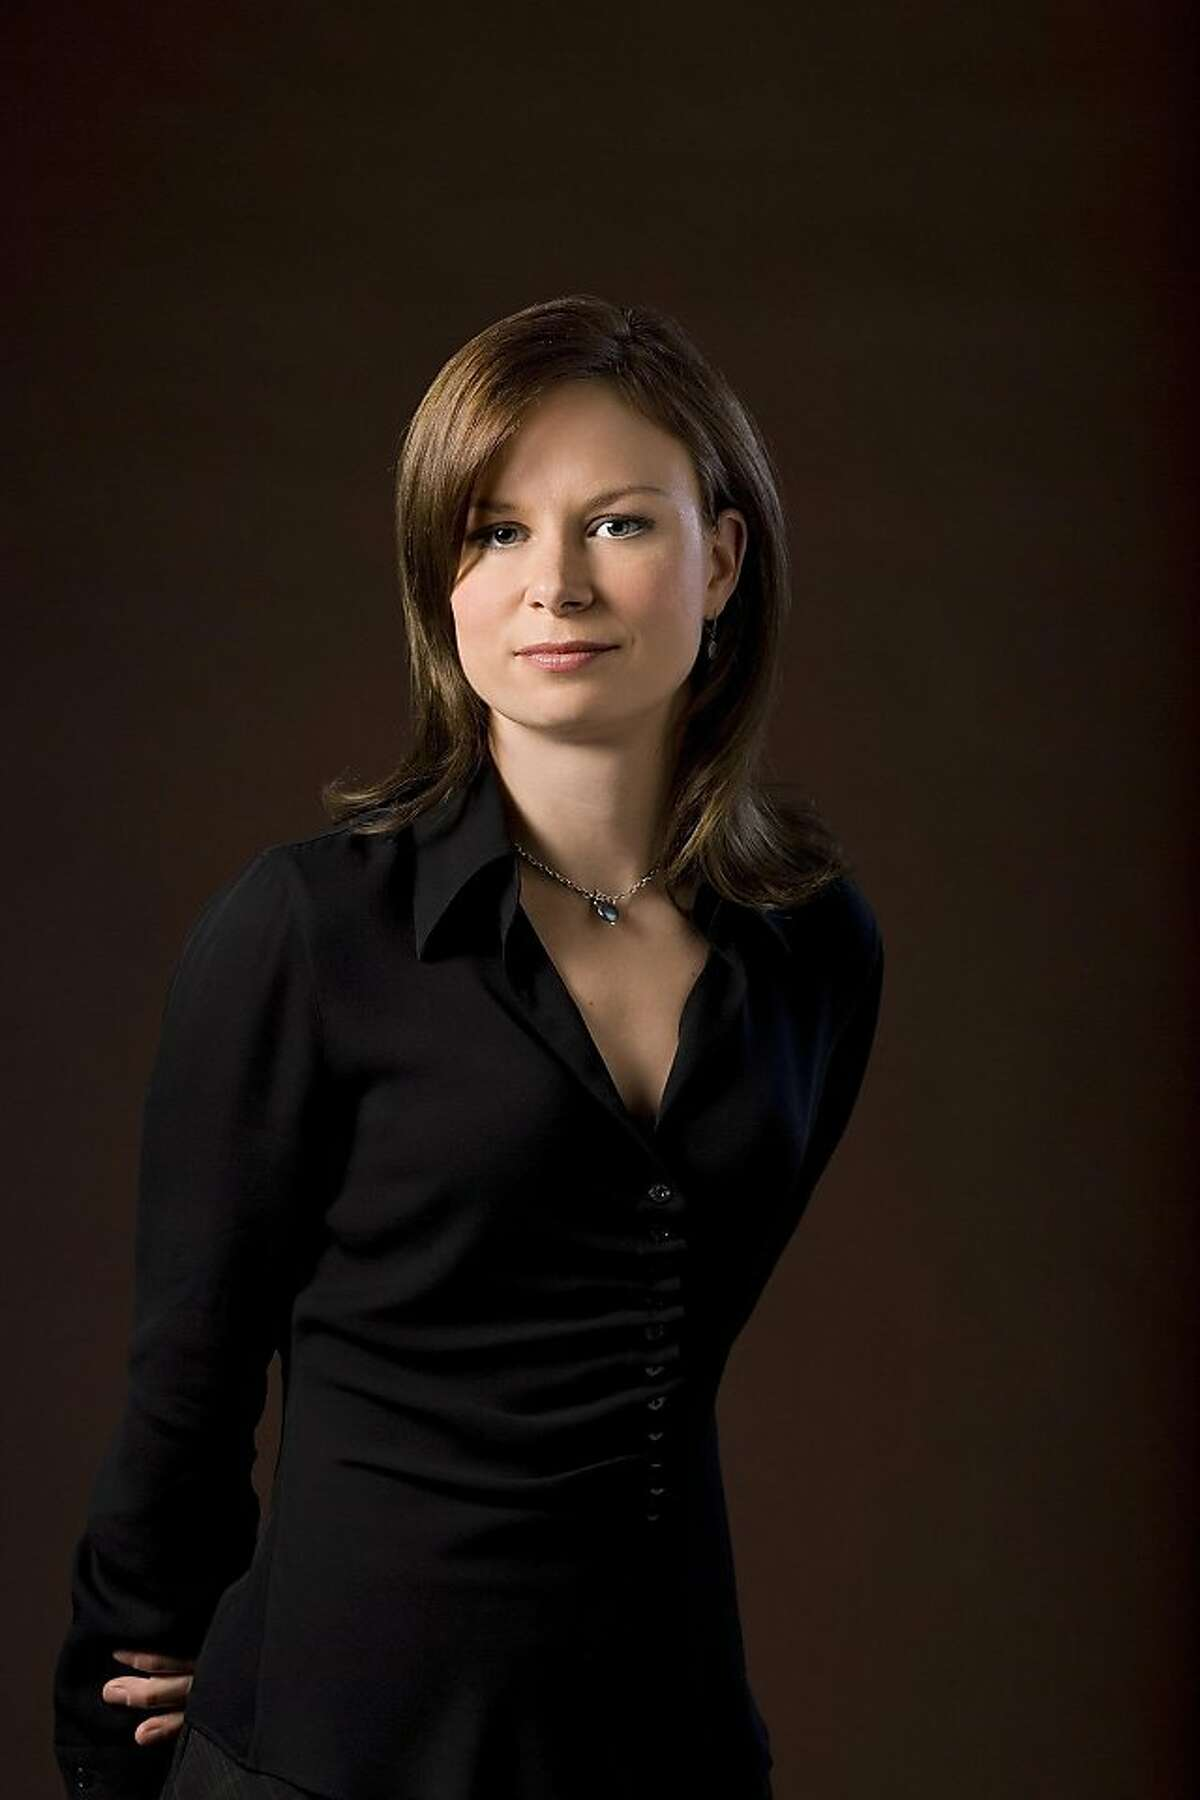 """24: Mary Lynn Rajskub as Chloe O'Brian. The clock has already started ticking for the thrilling sixth season of 24. """"Day 6"""" will start with a four-hour, two-night season premiere on Sunday, Jan. 14 and Monday, Jan. 15 (8:00-10:00 PM ET/PT) on FOX. ©2006 Fox Broadcasting Co. Cr: Joseph Viles/FOX Ran on: 01-16-2008 S.F. Sketchfest performers: Kristen Schaal (top) and (from left) Janet Varney, Mary Lynn Rajskub, Maria Bamford and Rachel Dratch. ALSO Ran on: 03-16-2008 Mary Lynn Rajskub of Foxs 24 is selling a home in L.A."""